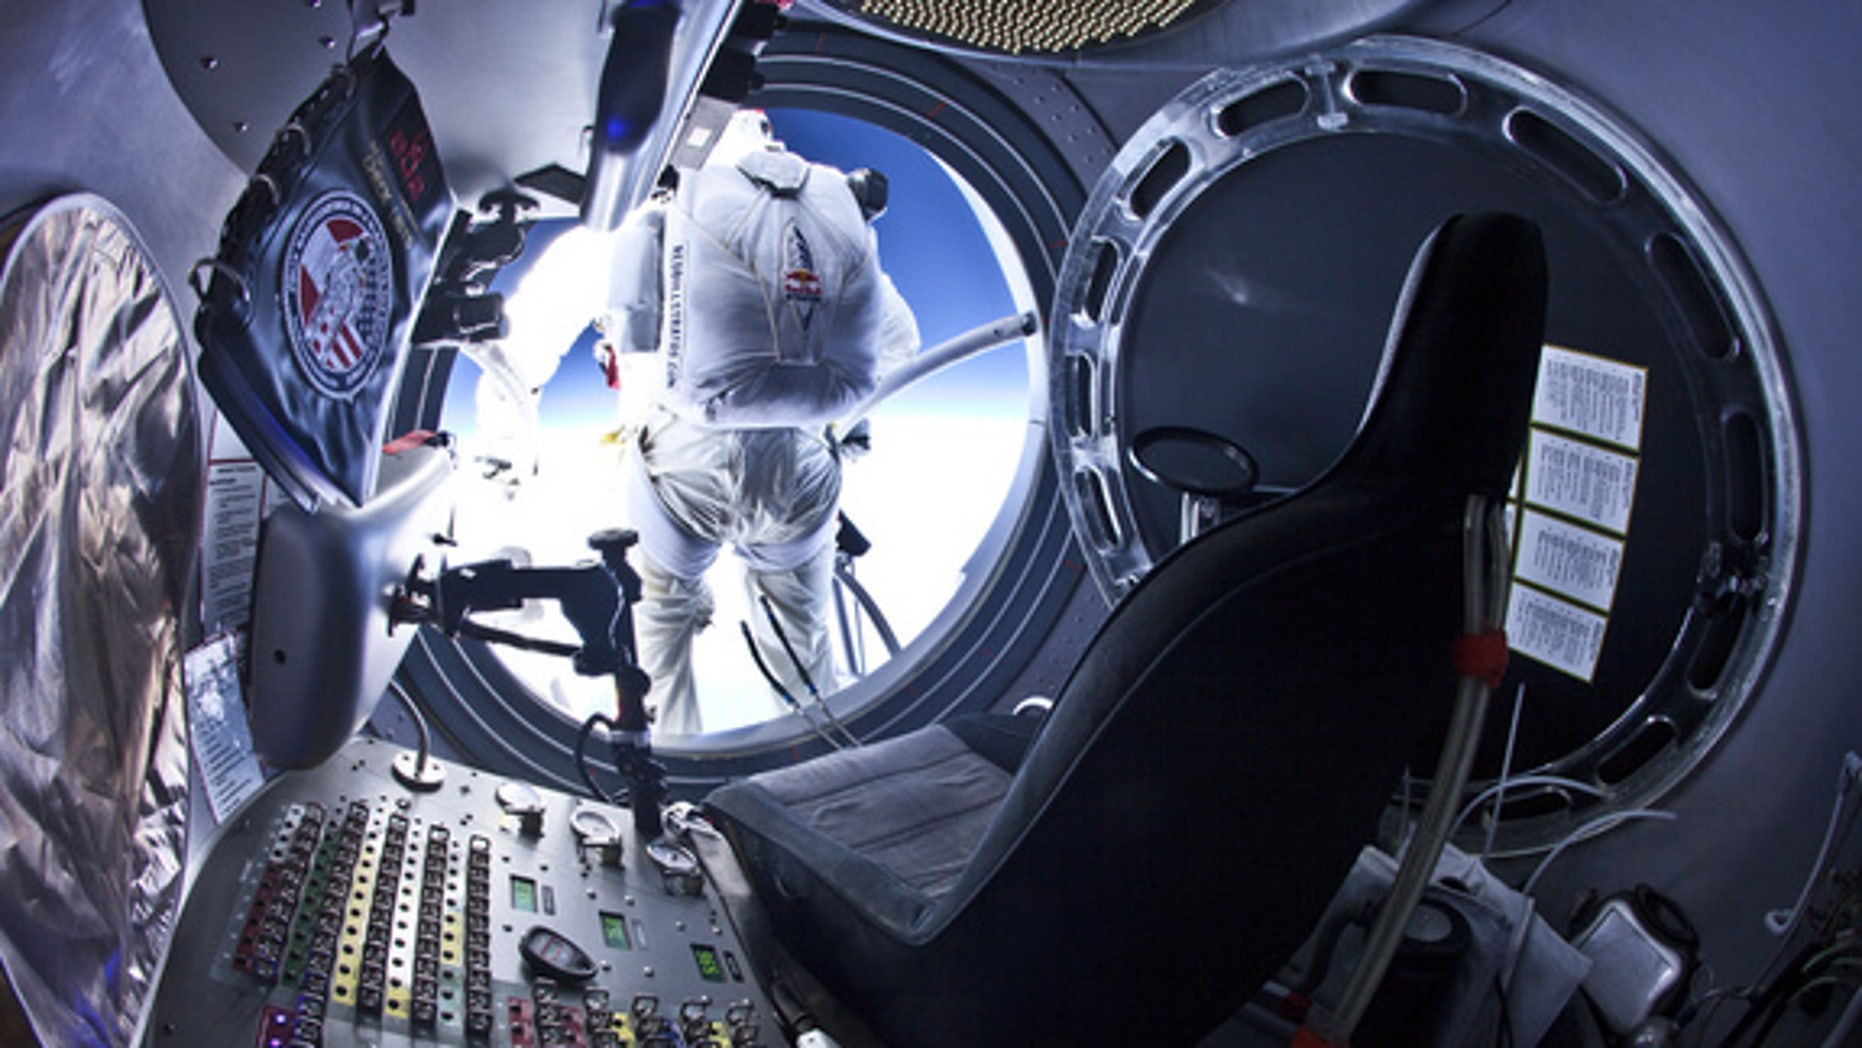 Felix Baumgartner completes final test jump from 97,145.7 feet/29,610 meters on July 25, 2012, for the Red Bull Stratos mission, which aims to set the world record for highest skydiver by leaping from 120,000 feet and breaking the sound barrier